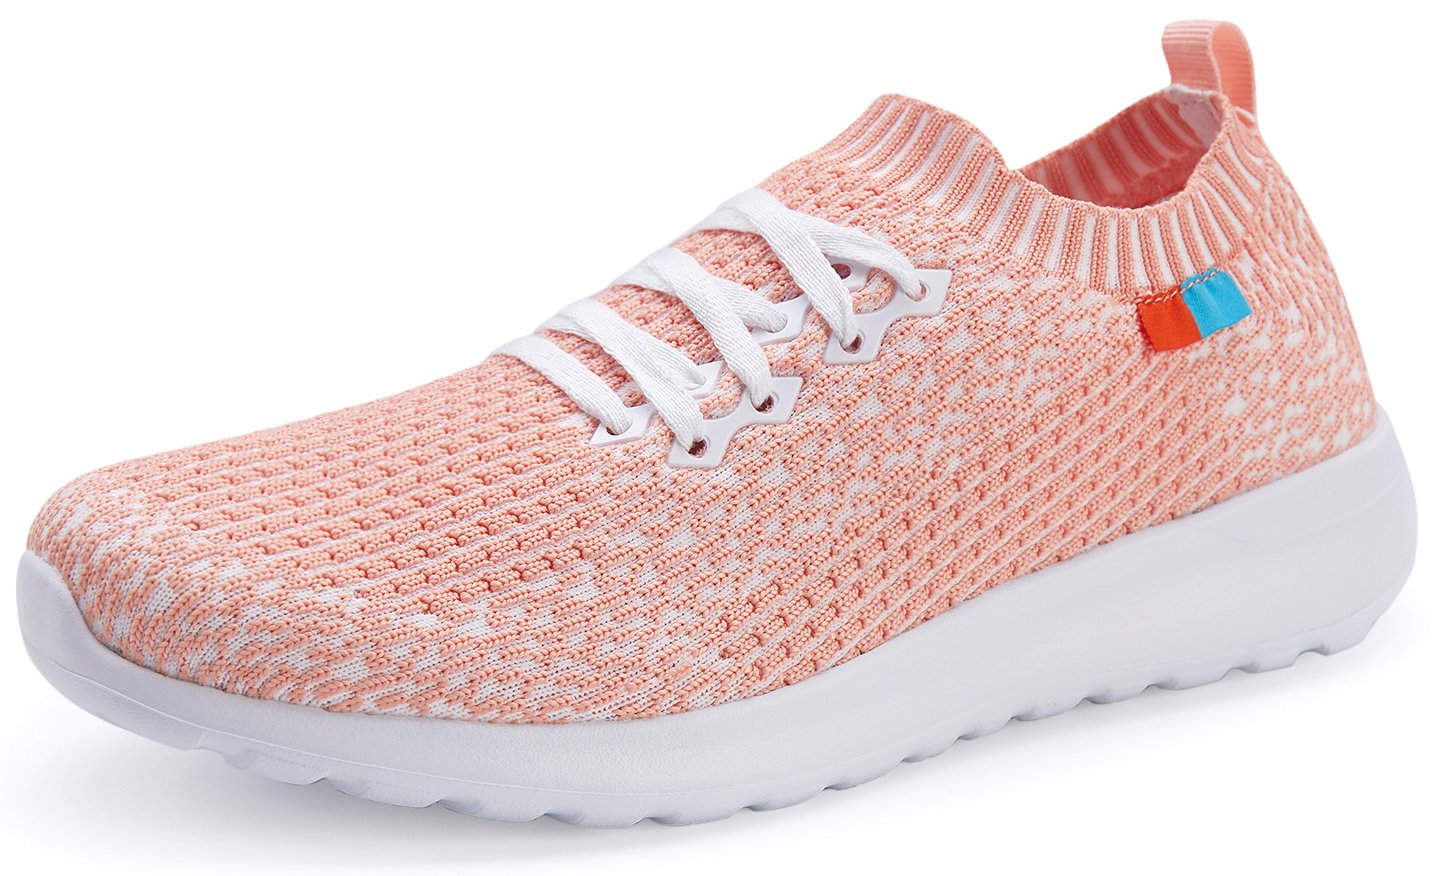 Forucreate Women's Casual Lightweight Pink Sneakers Summer Flats Breathable Mesh Running Shoes(Pink 41)